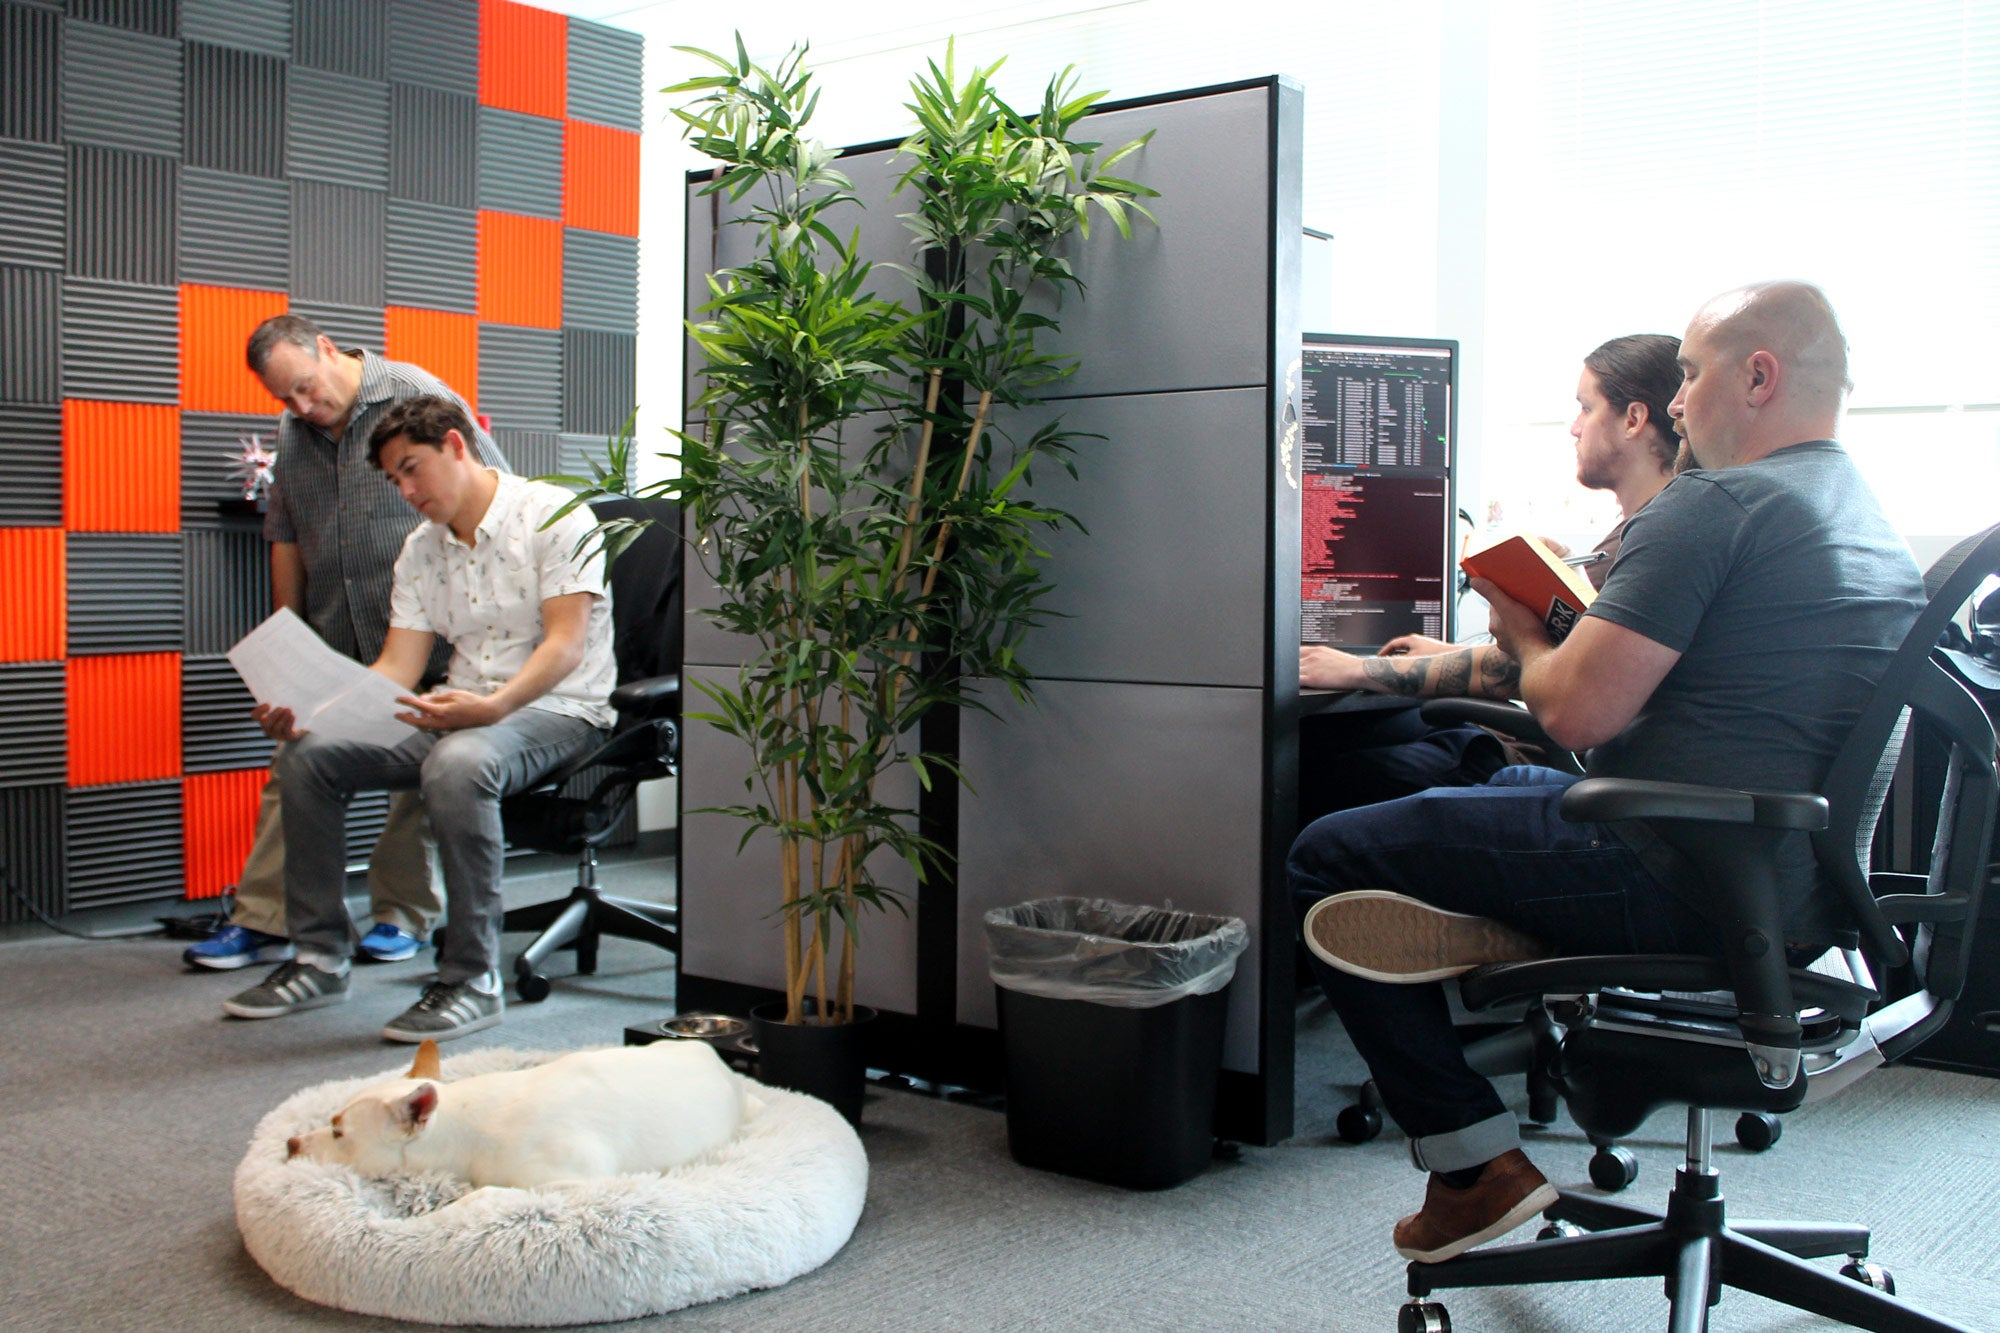 Working in the office at Zesty.io